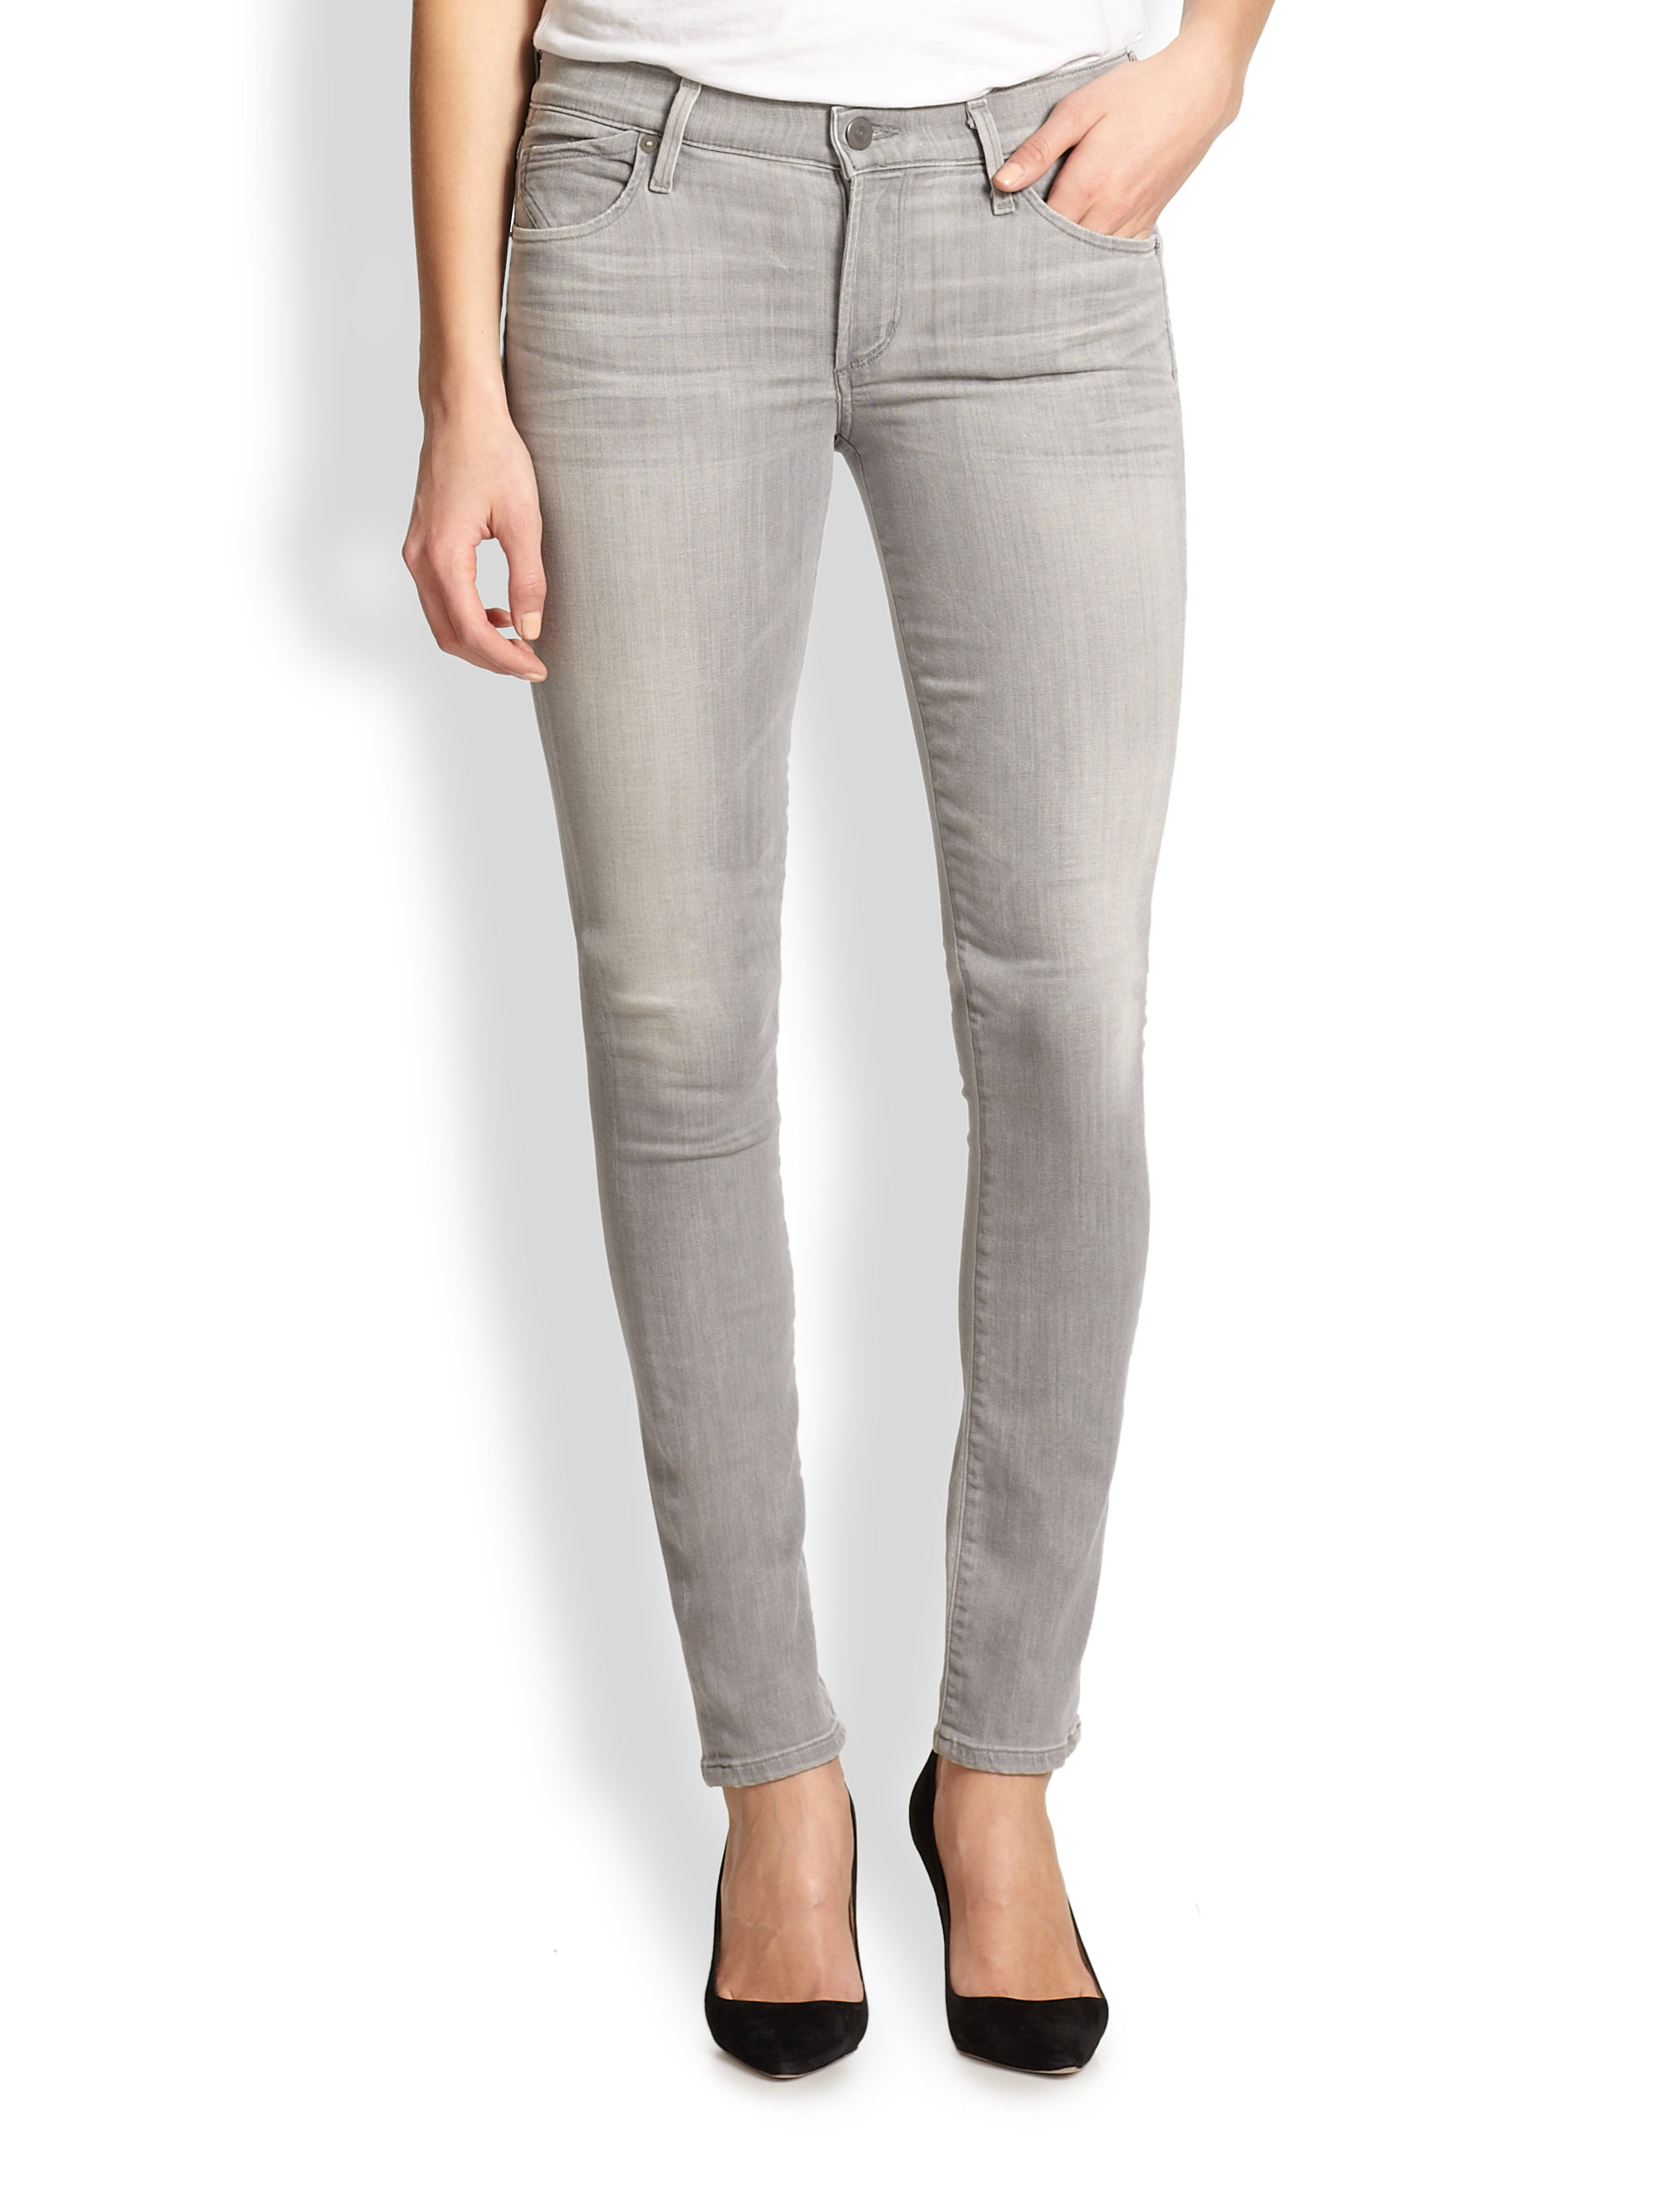 Lyst - Citizens Of Humanity Pretender Avedon Skinny Jeans in Gray